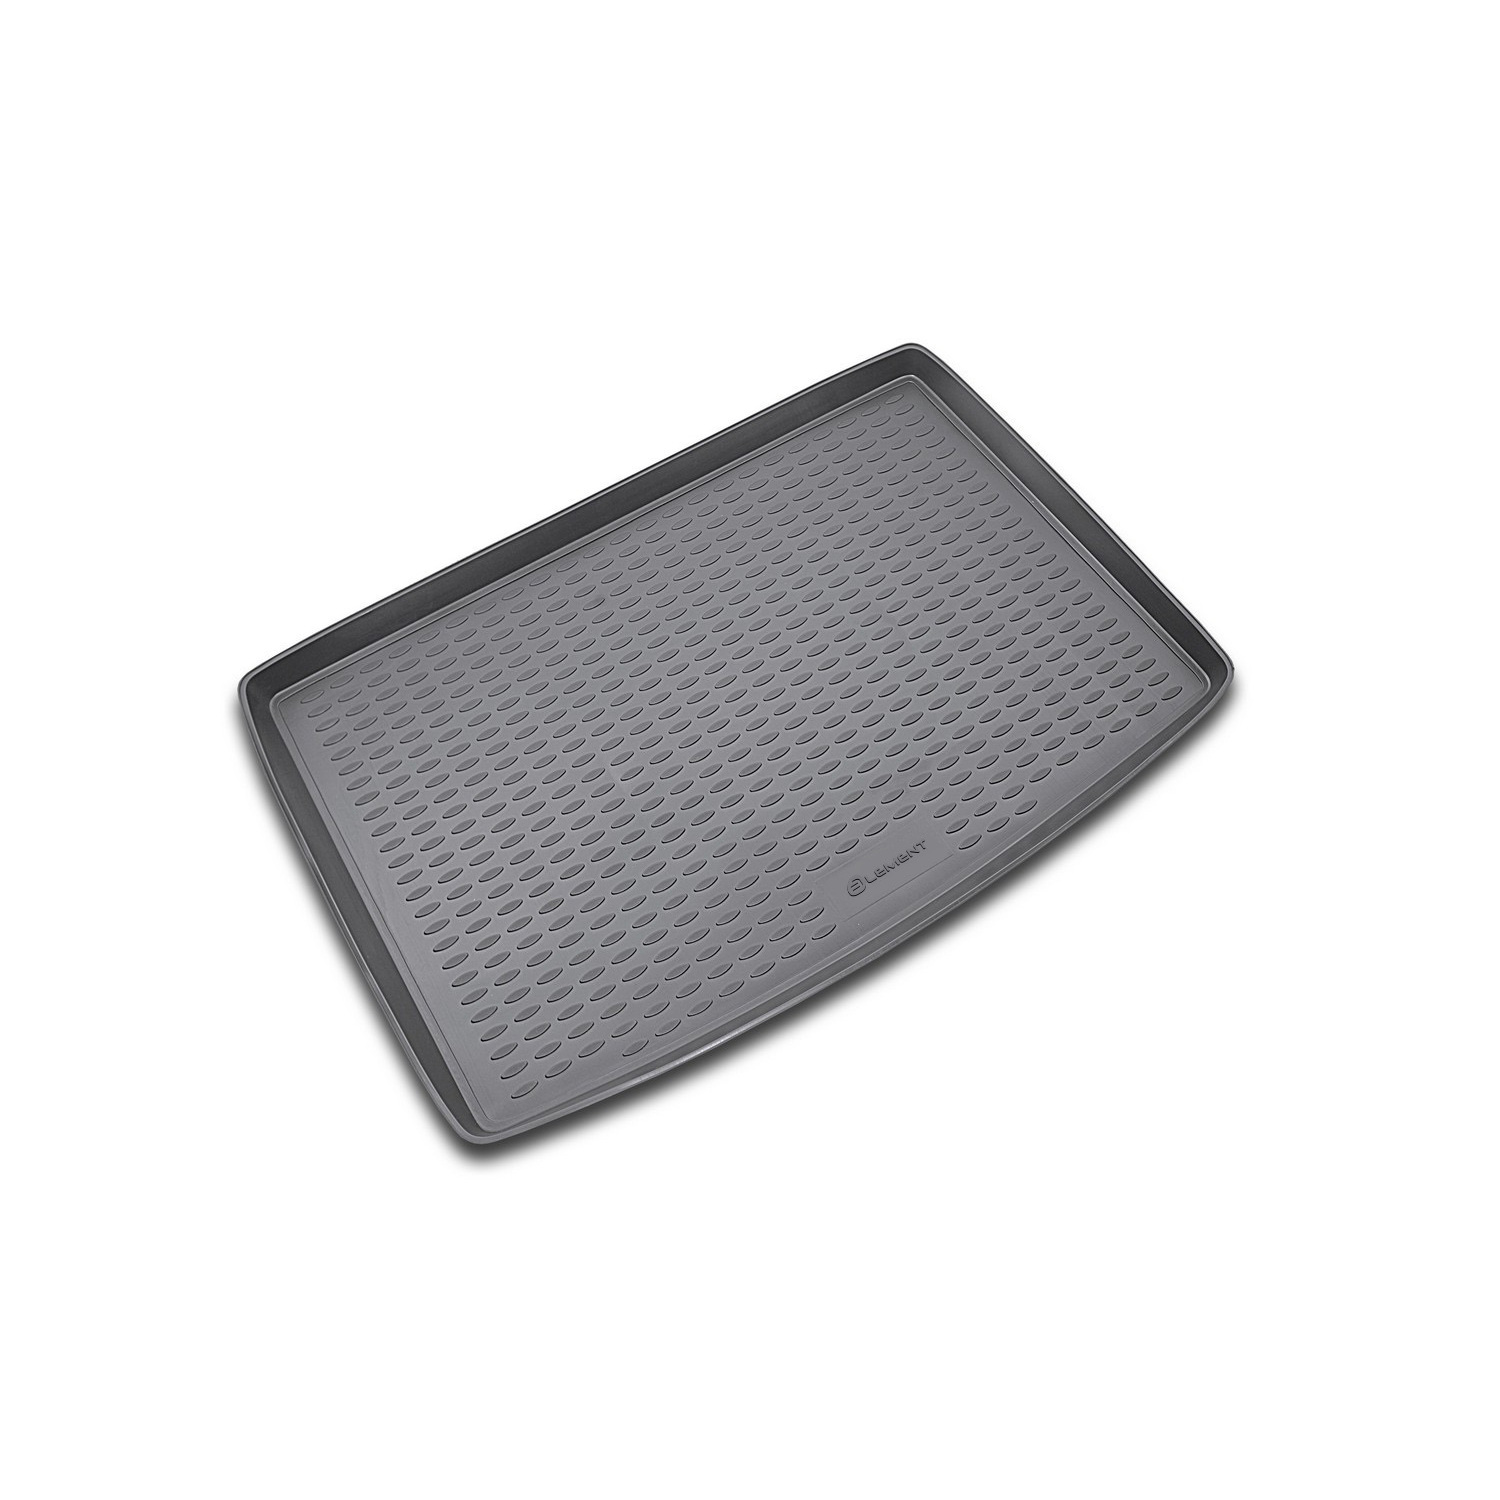 Trunk Mat For VW Golf Plus 2004 2014 Cotton. NLC.51.16.B11